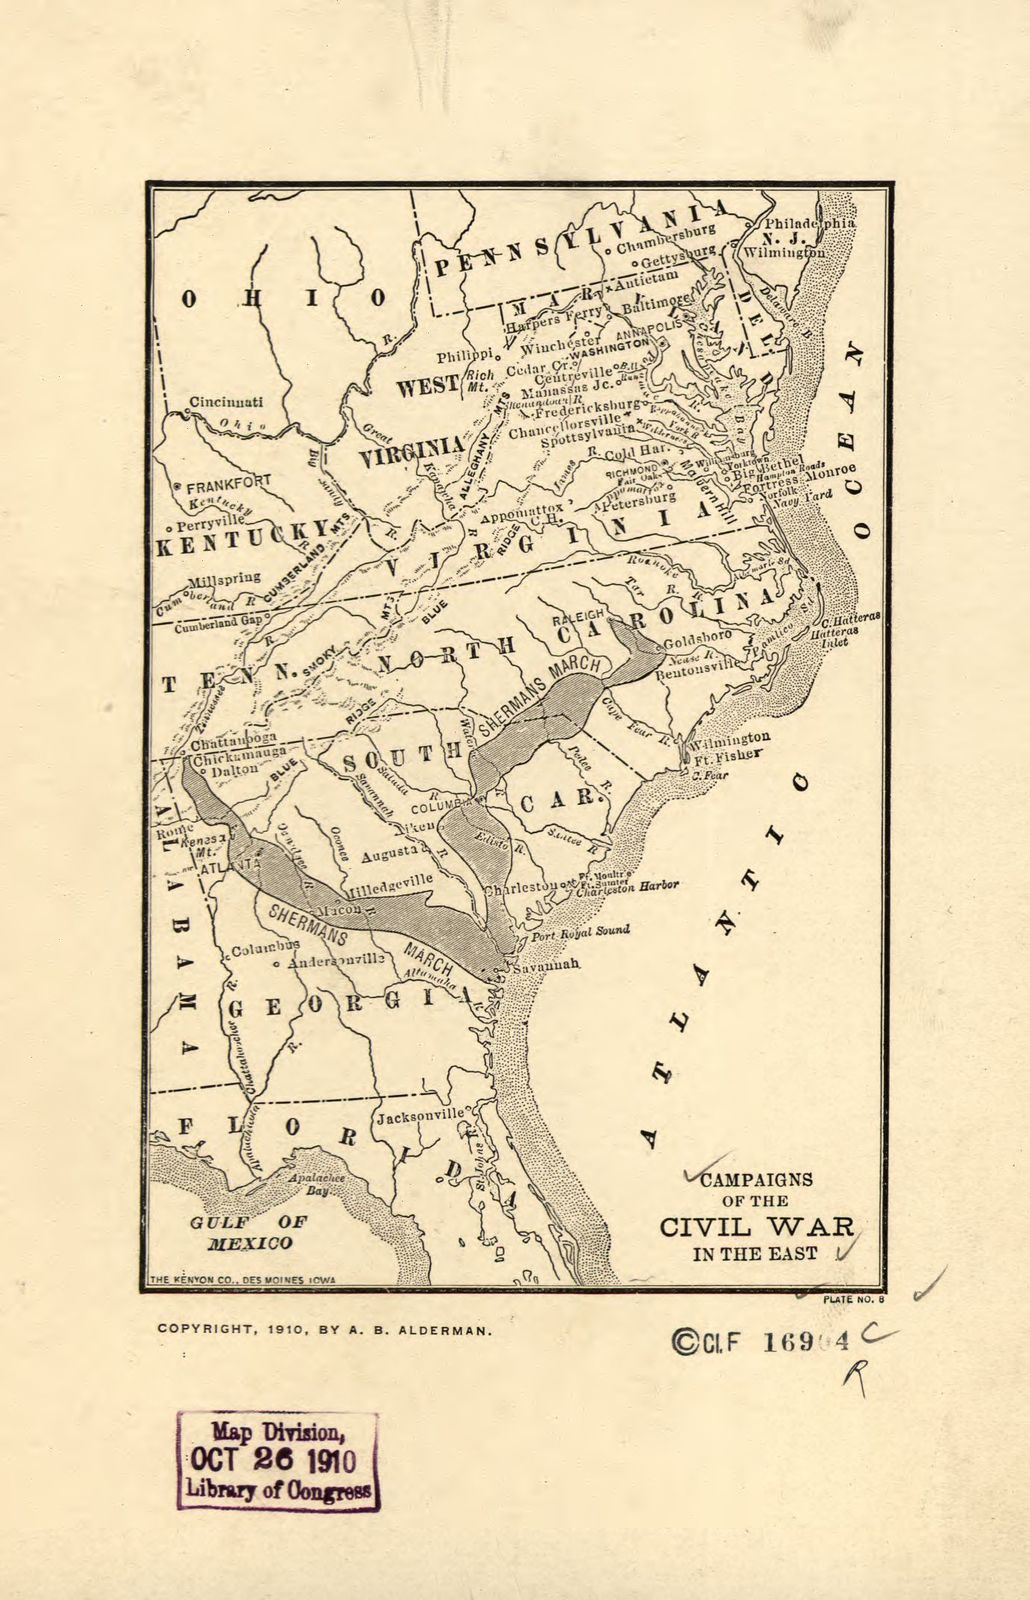 Campaigns of the Civil War in the East.